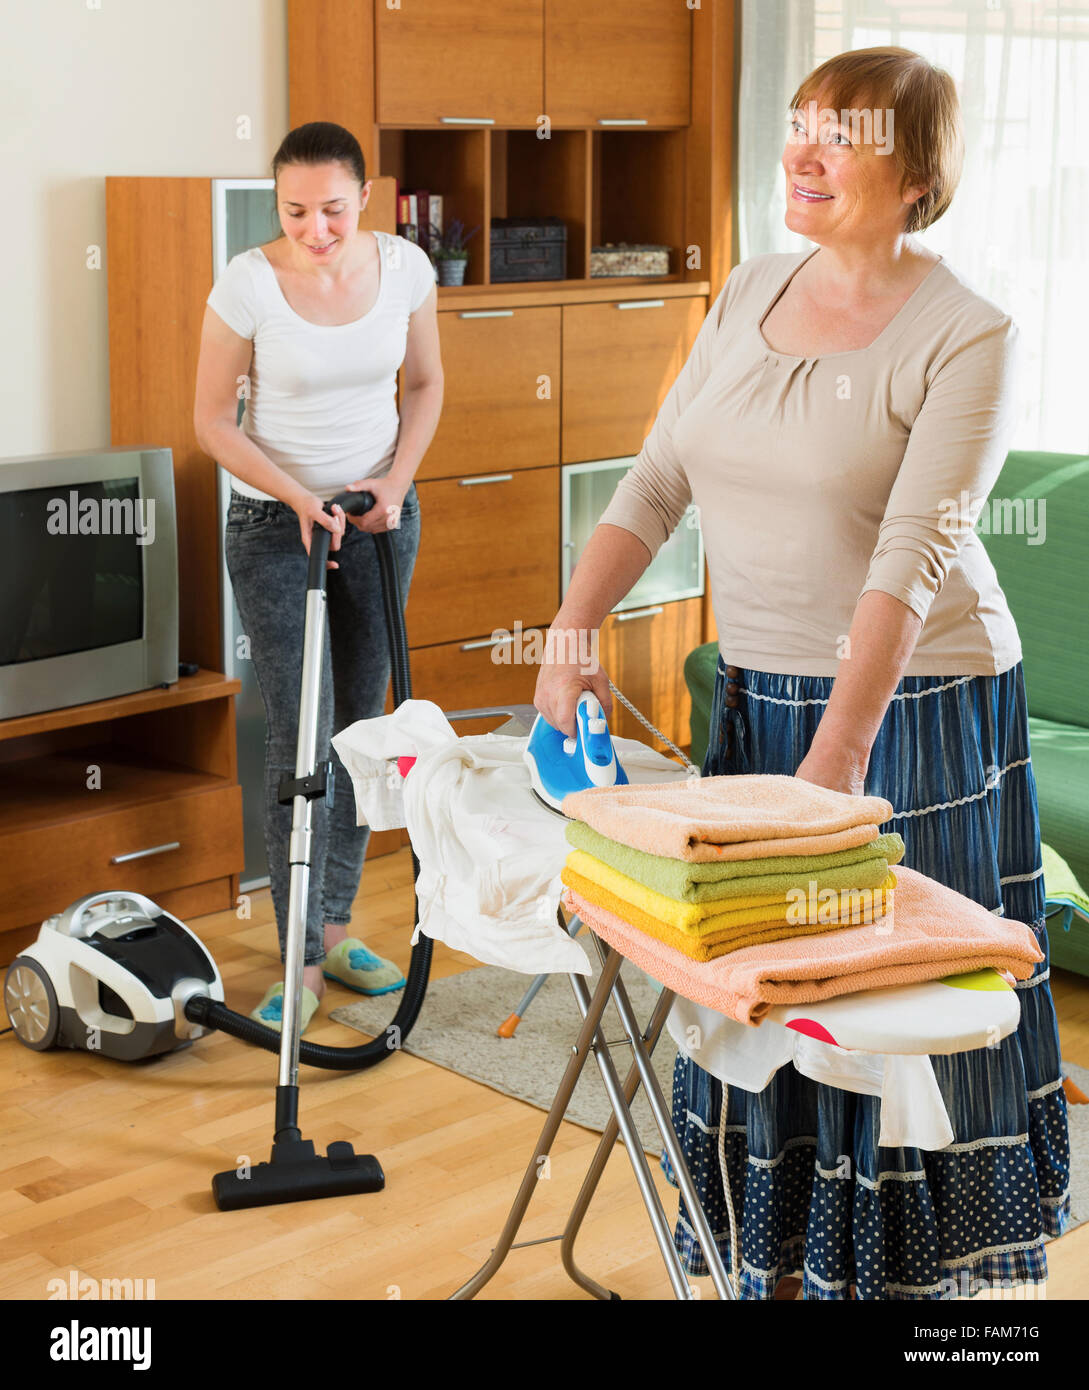 Mature Woman Ironing Clothes And Her Daughter Help Cleaning Home